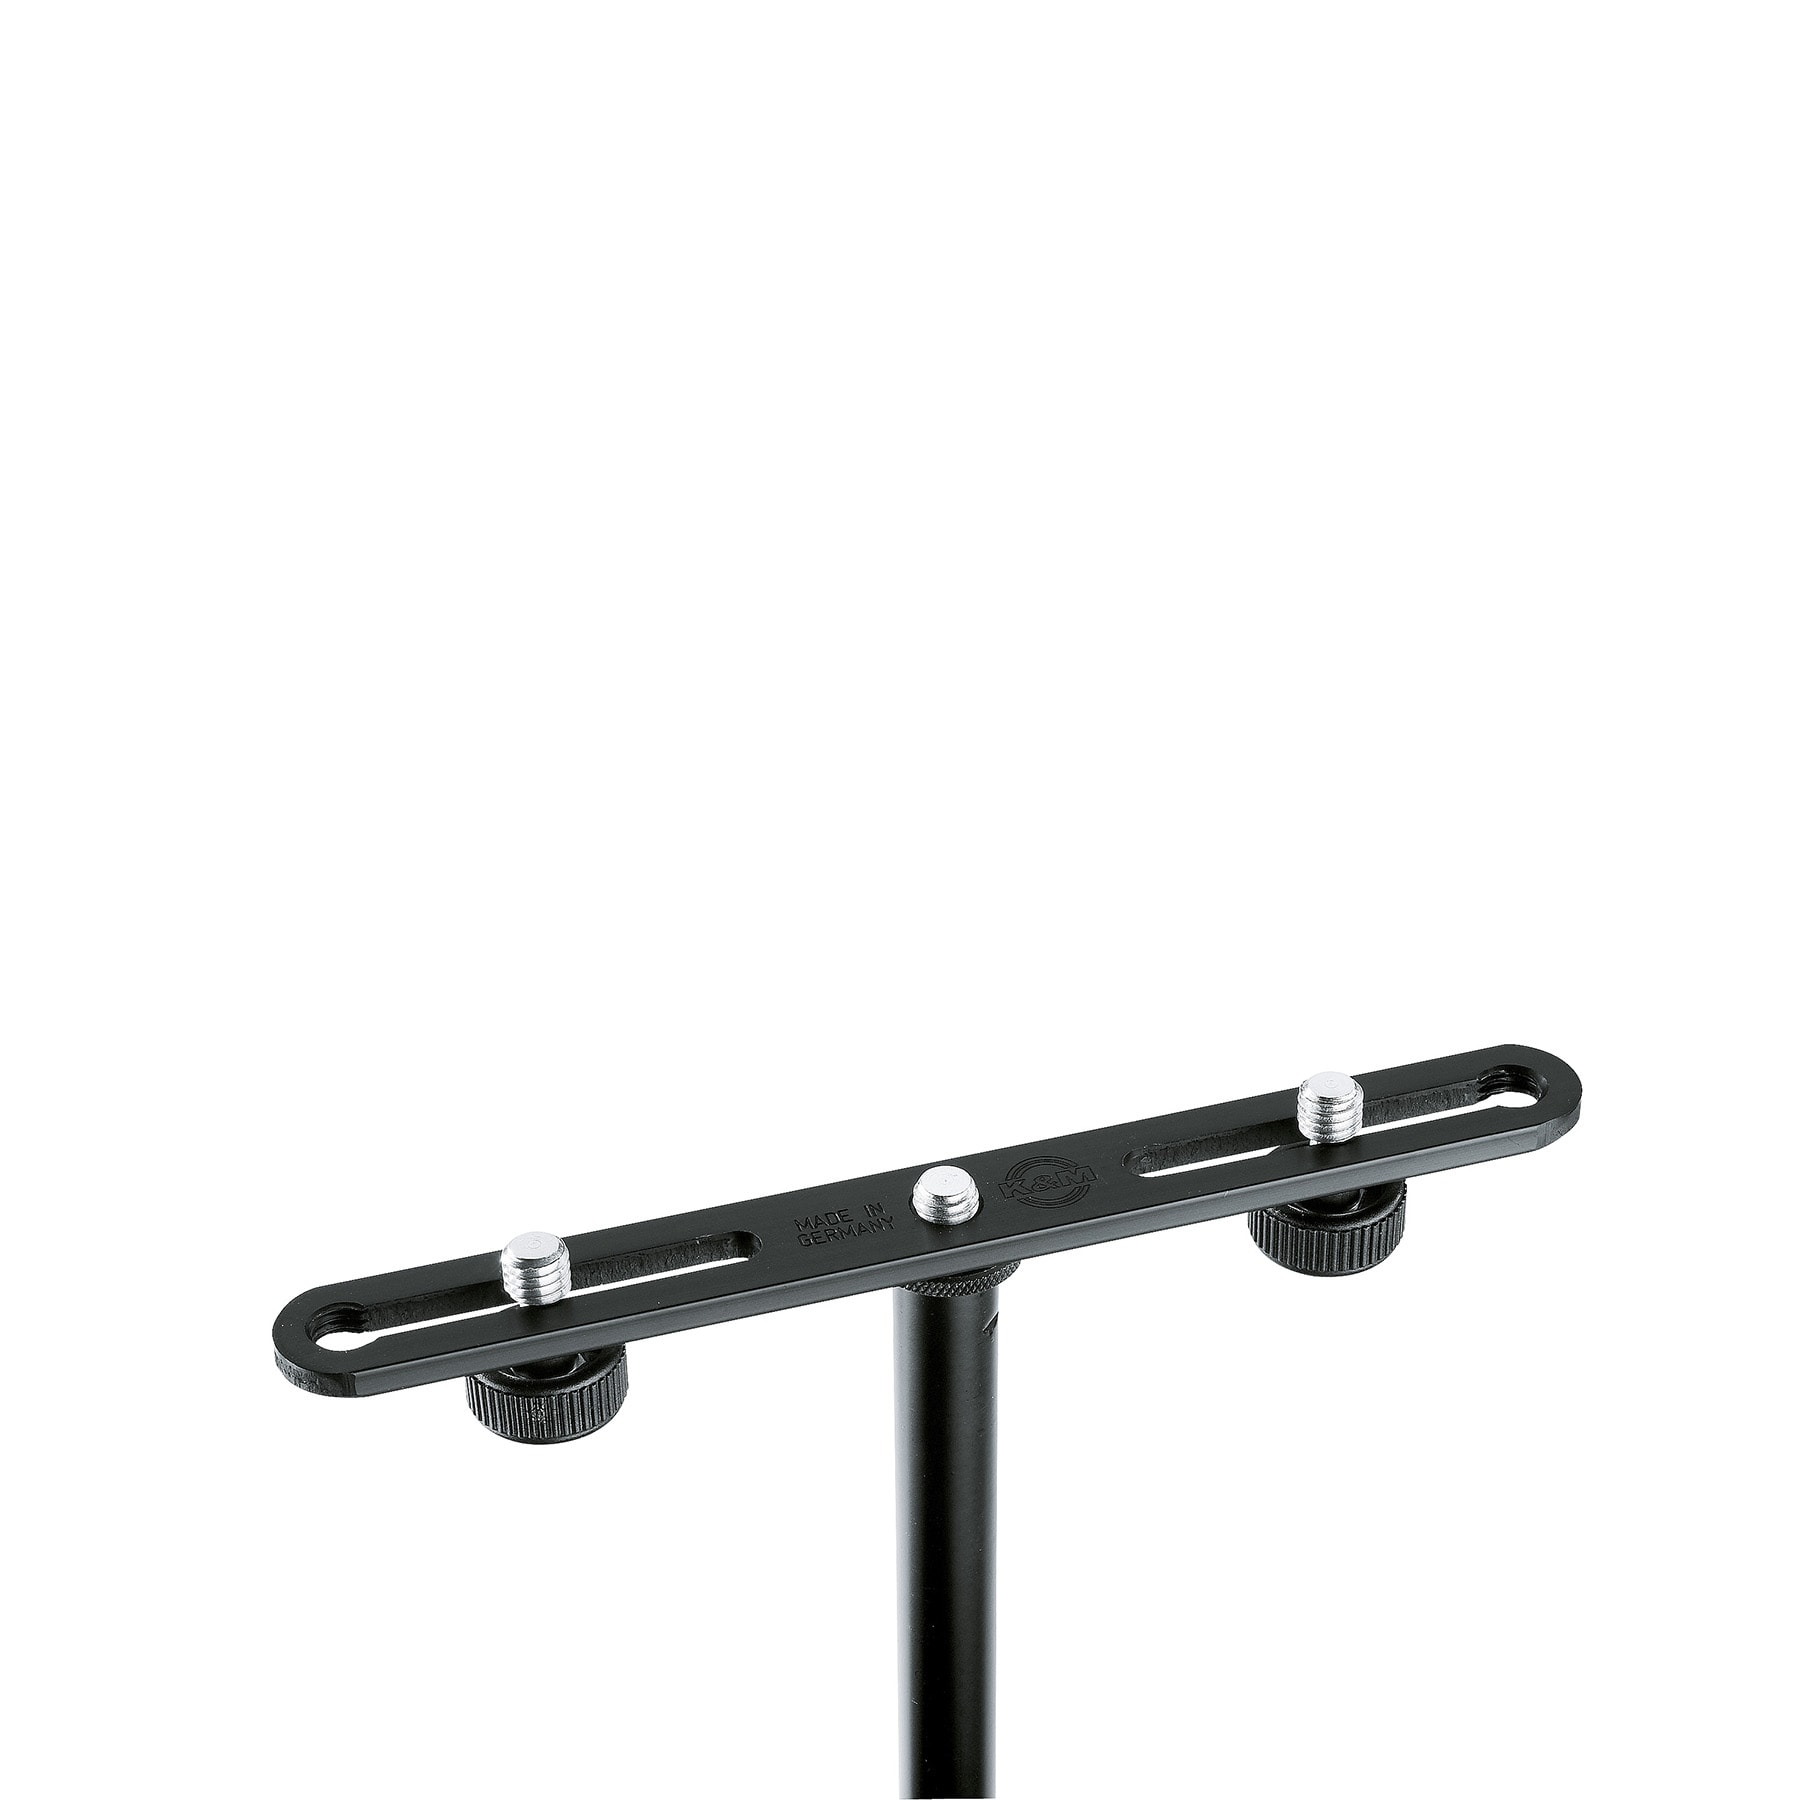 KM23550 - Microphone bar